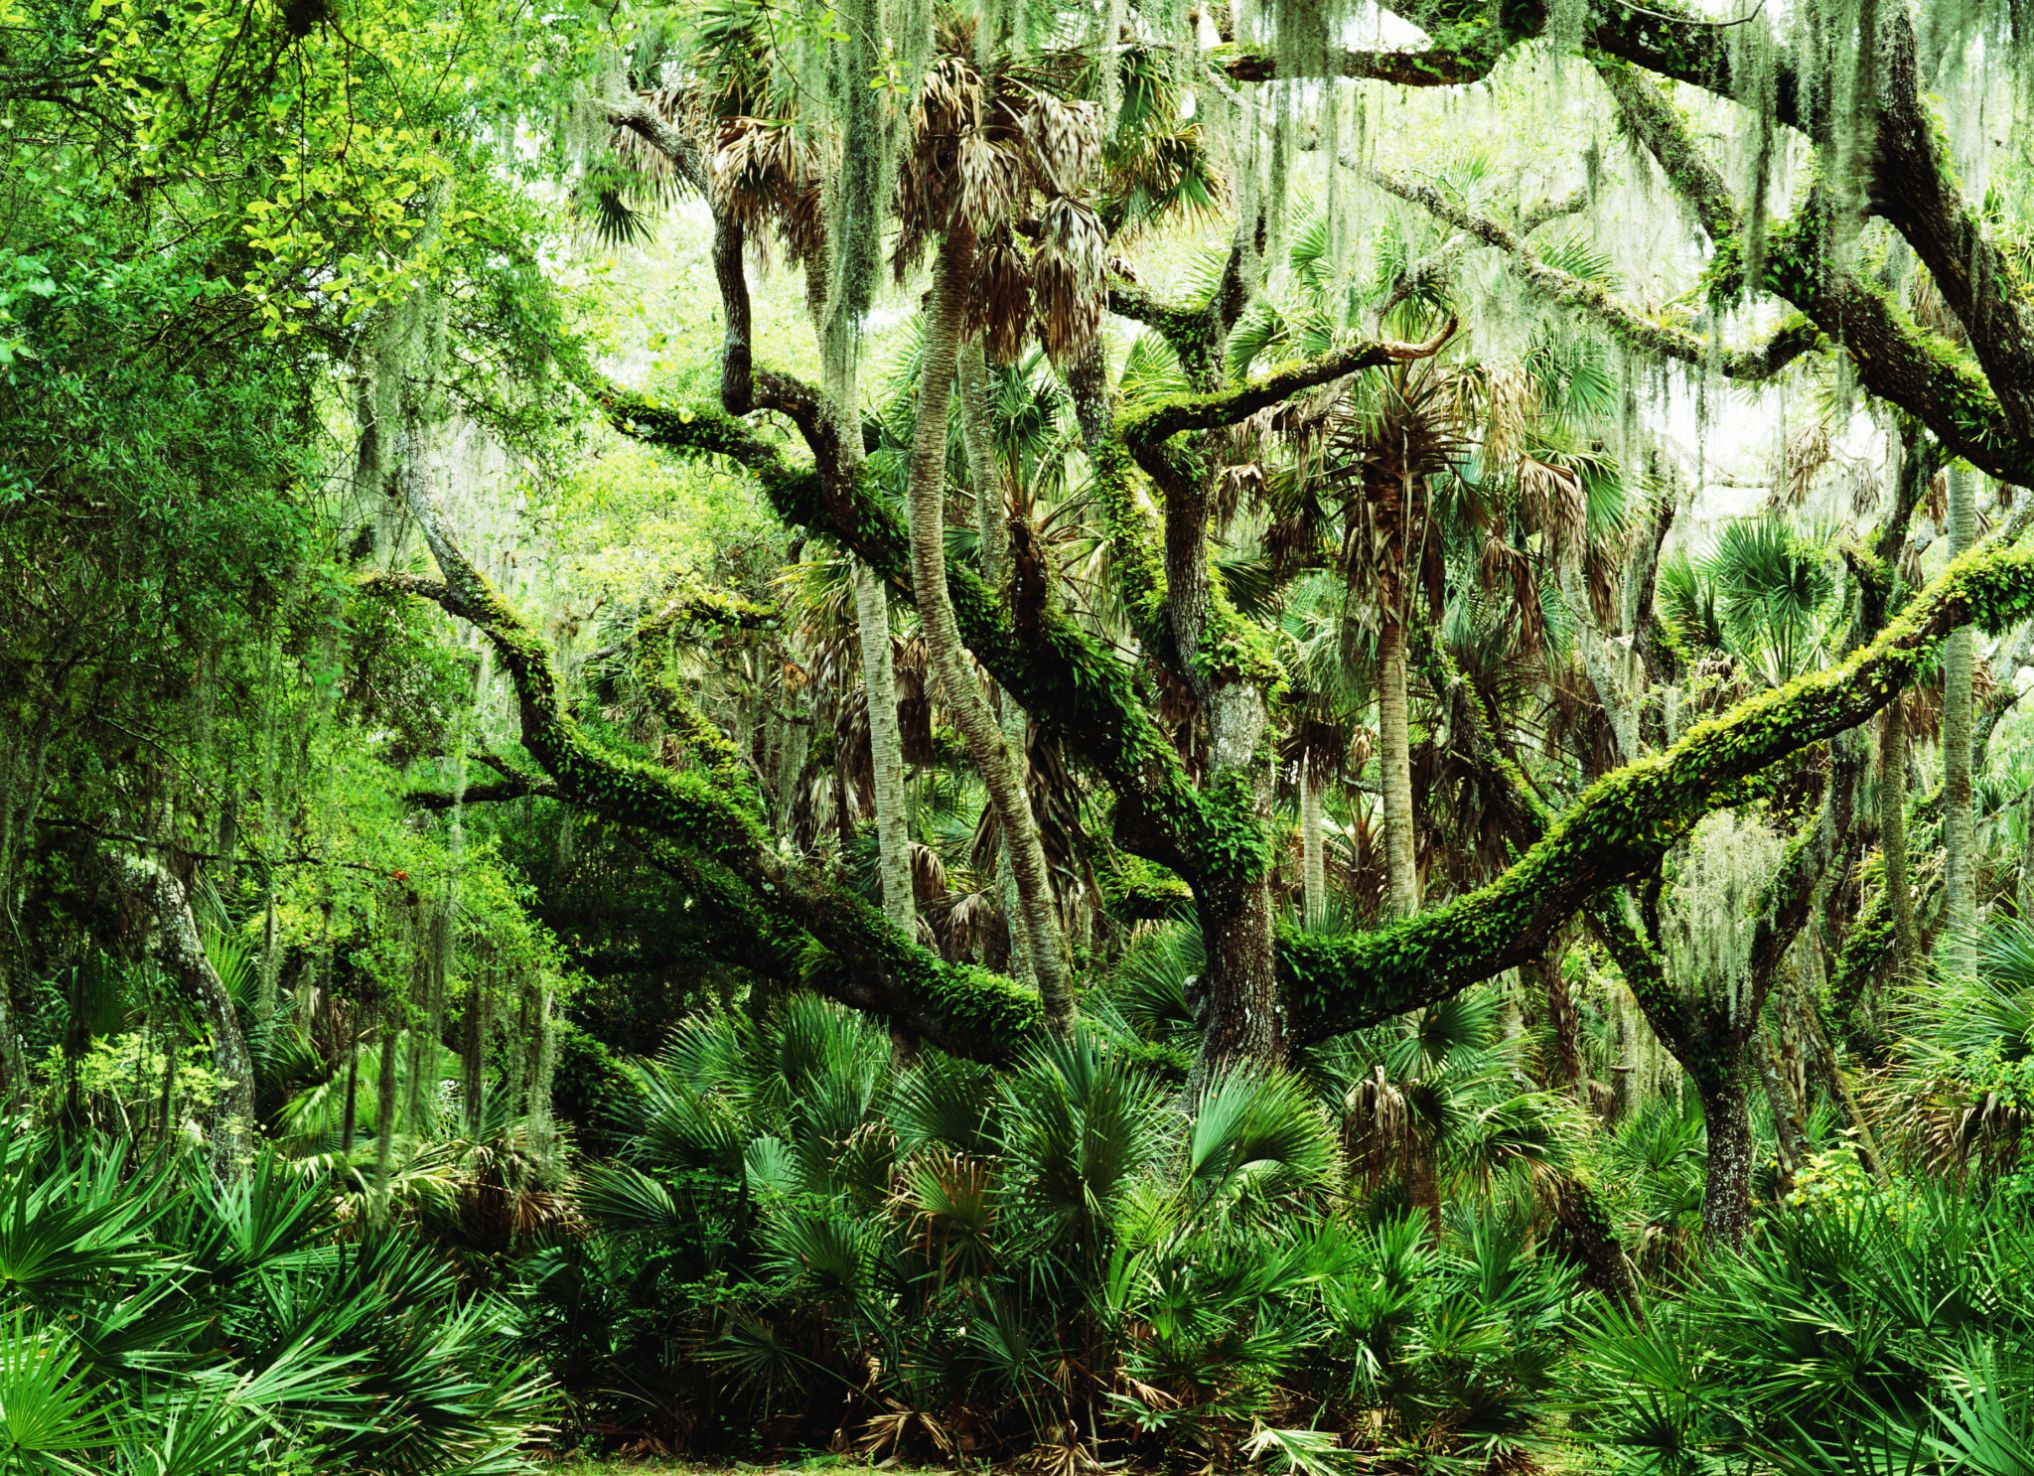 Ocala National Forest in Florida